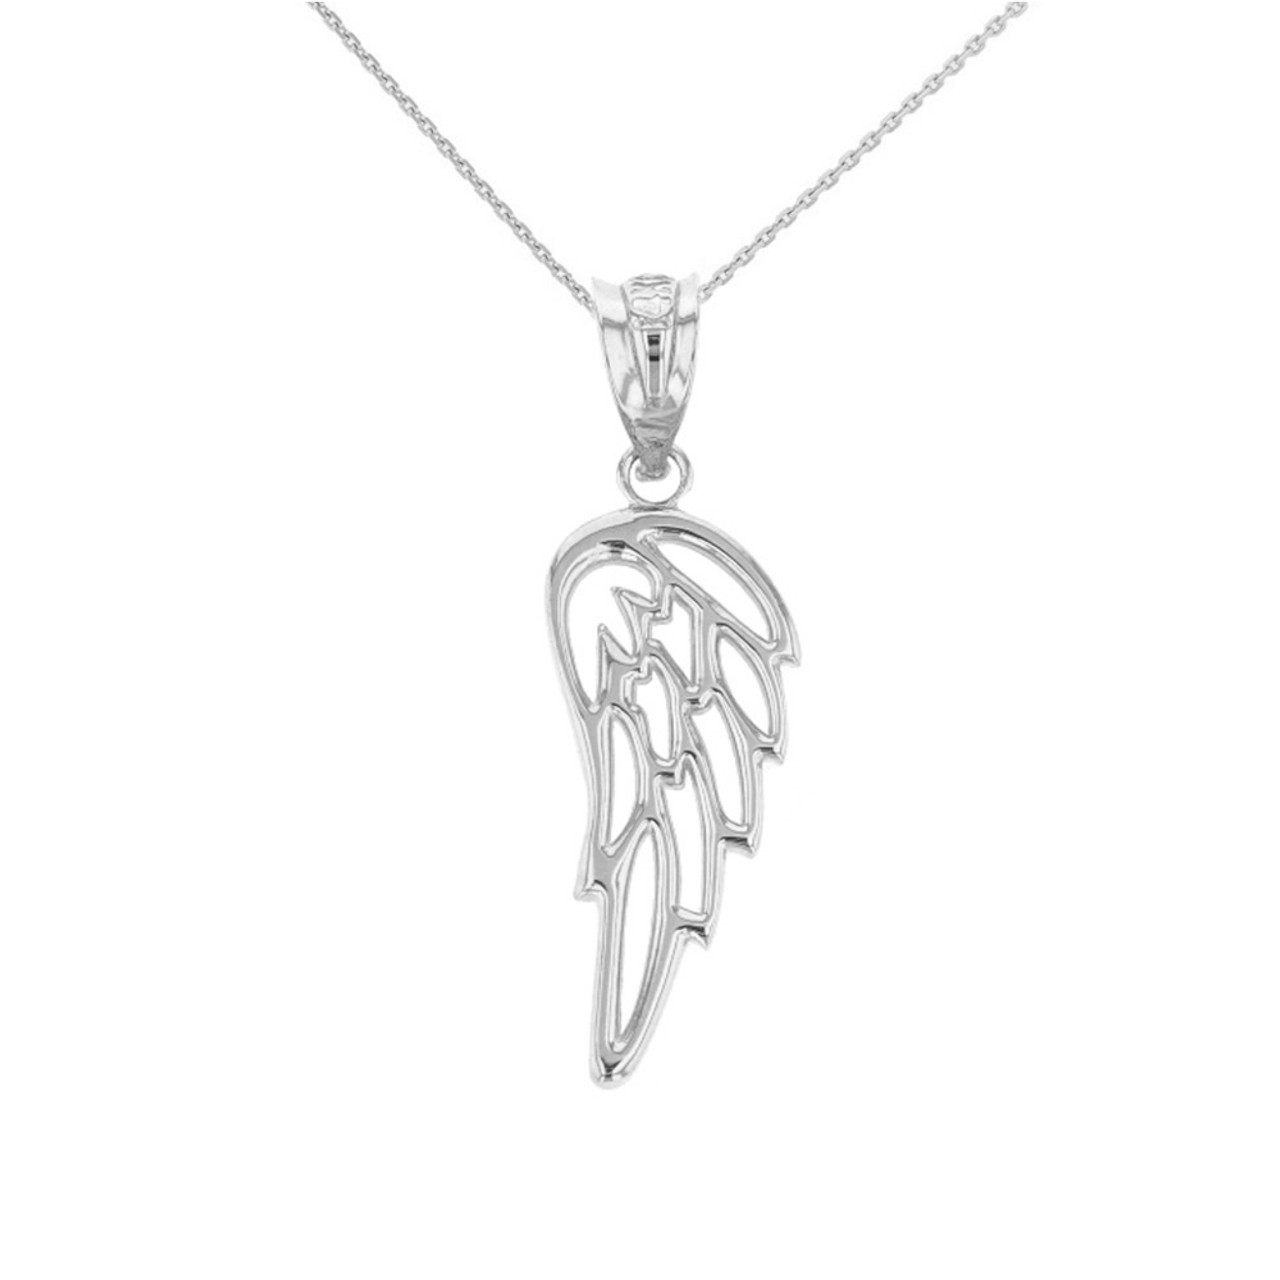 angel of silver tuscany simple co on jewellery amazon pendant prince chain uk sterling dp wing wales